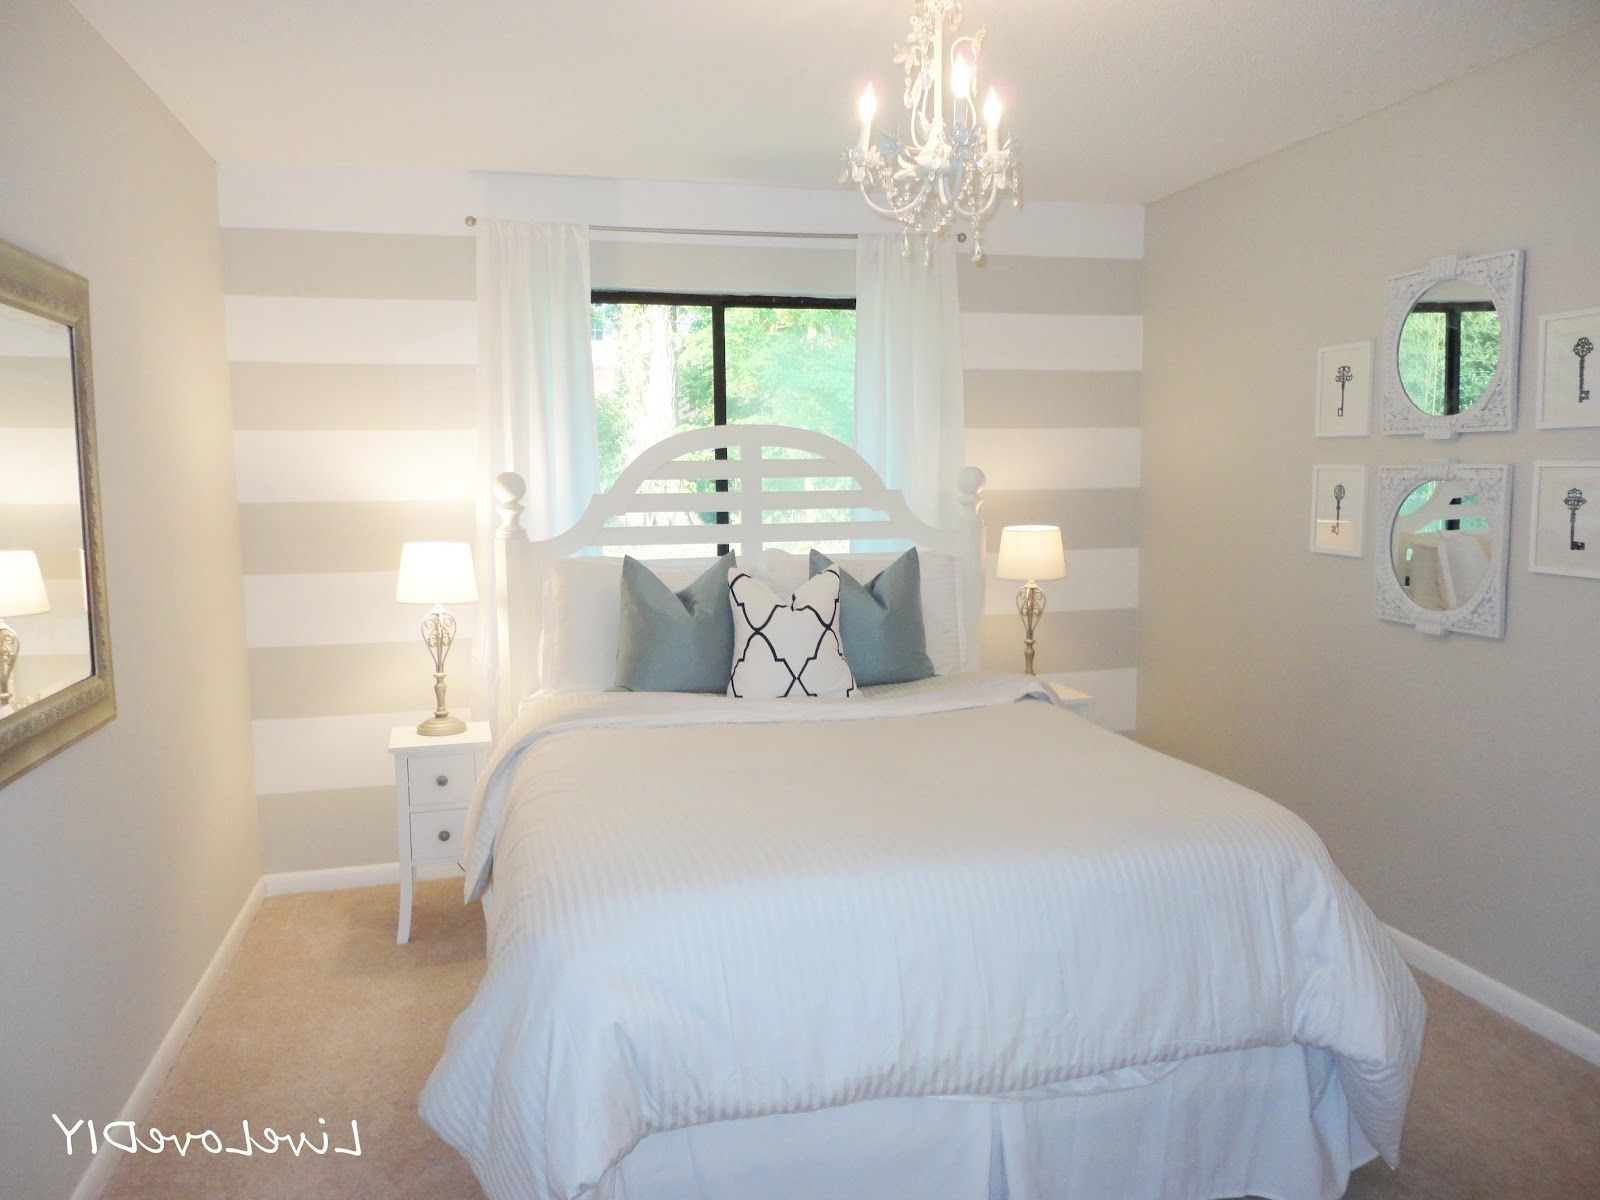 accent wall ideas you ll surely wish to try this at home on accent wall ideas id=33726